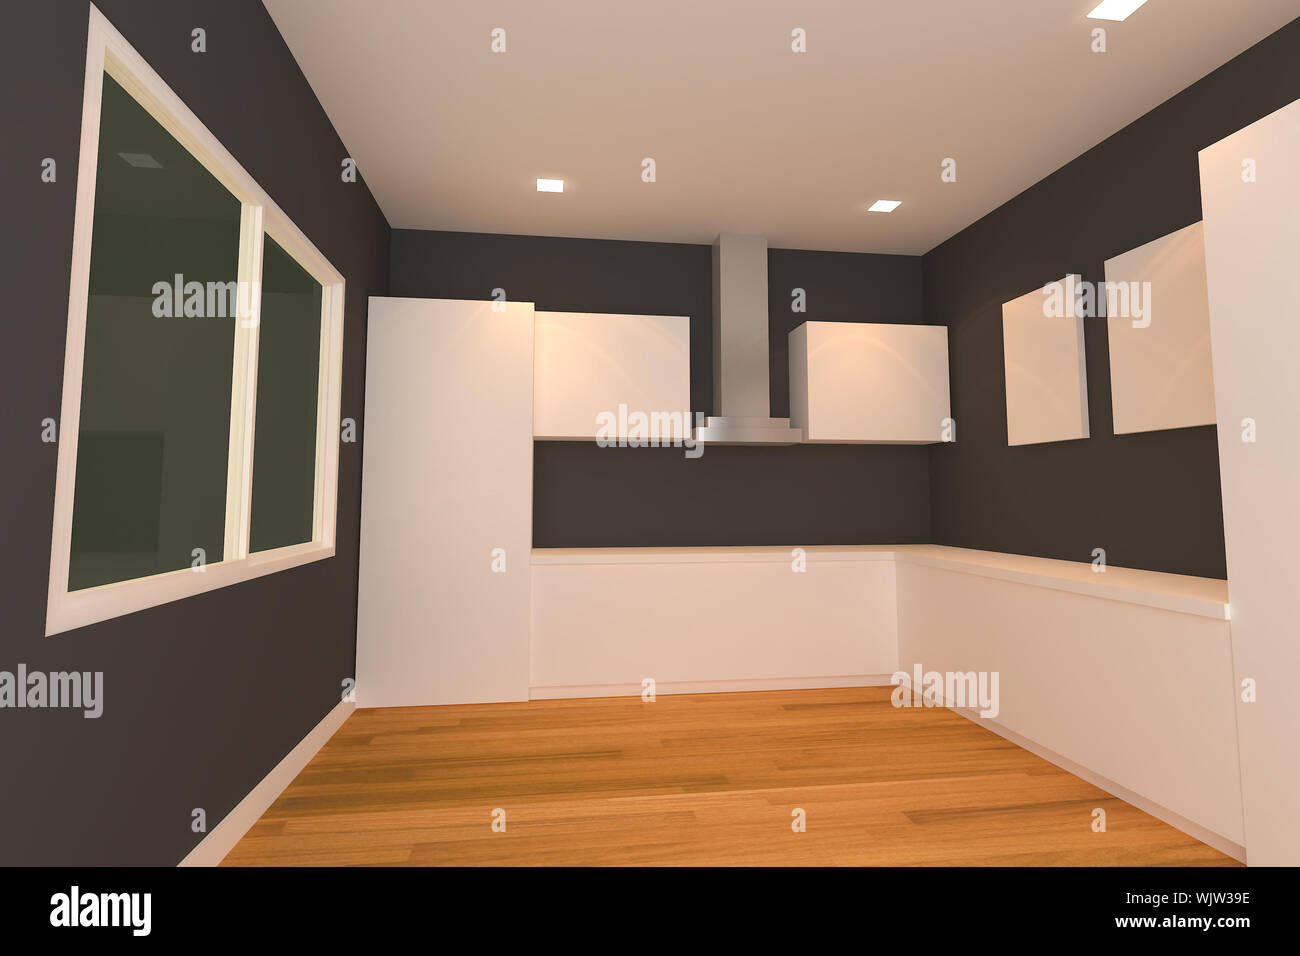 empty interior design for kitchen room with black wall Stock Photo